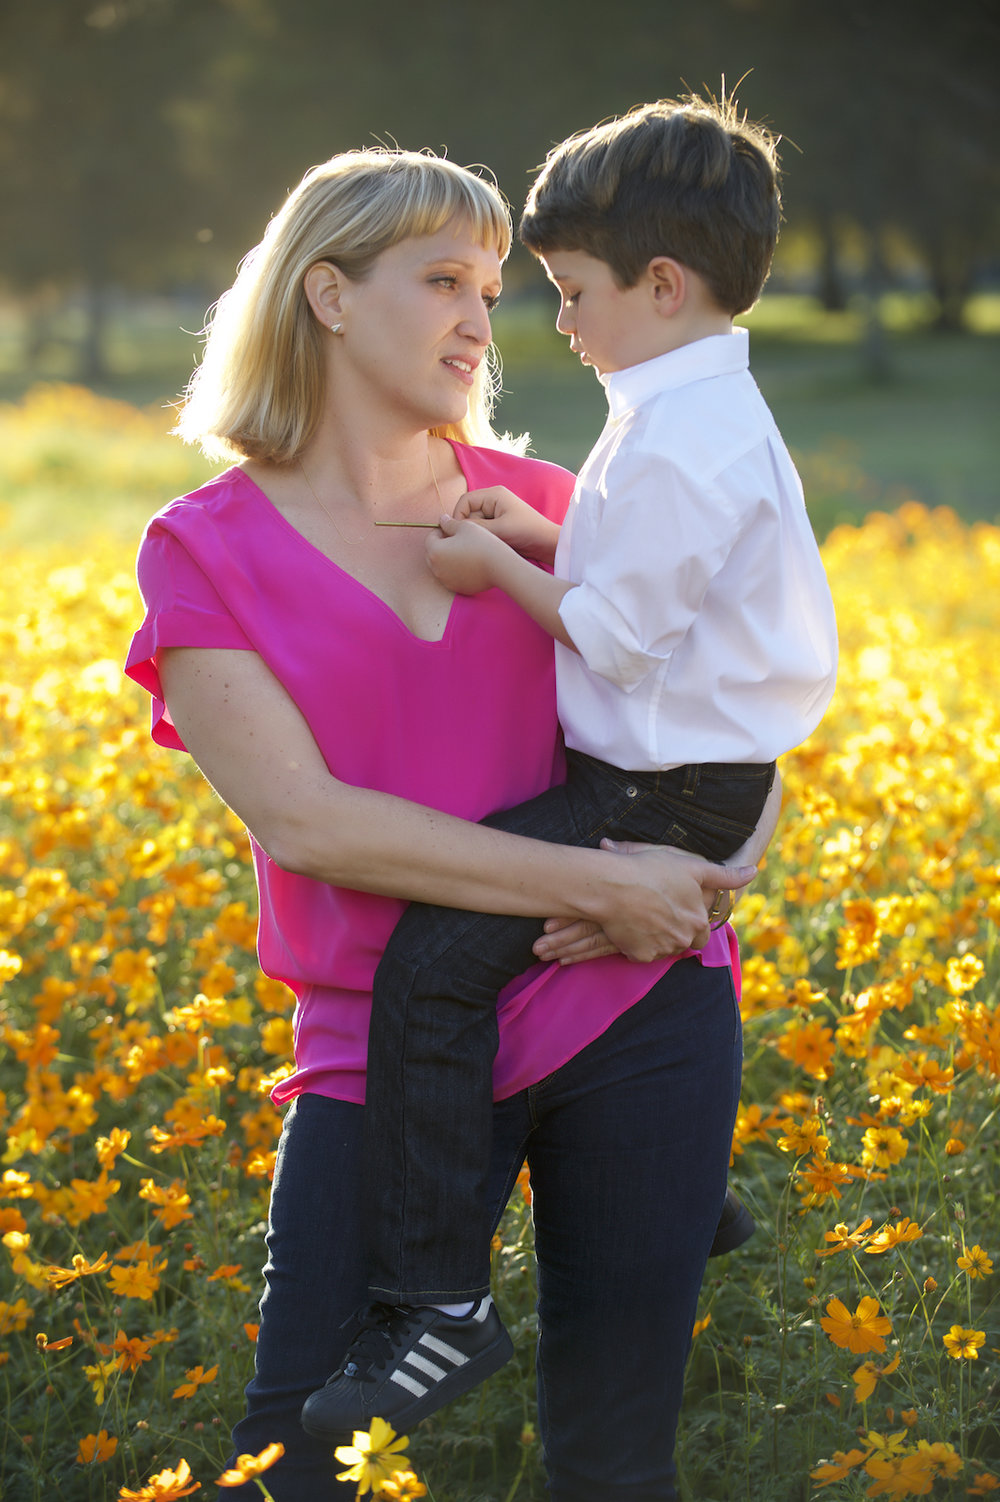 A mother and her young son in a filed of flowers.  Photo by New Orleans based photographer, Marc Pagani